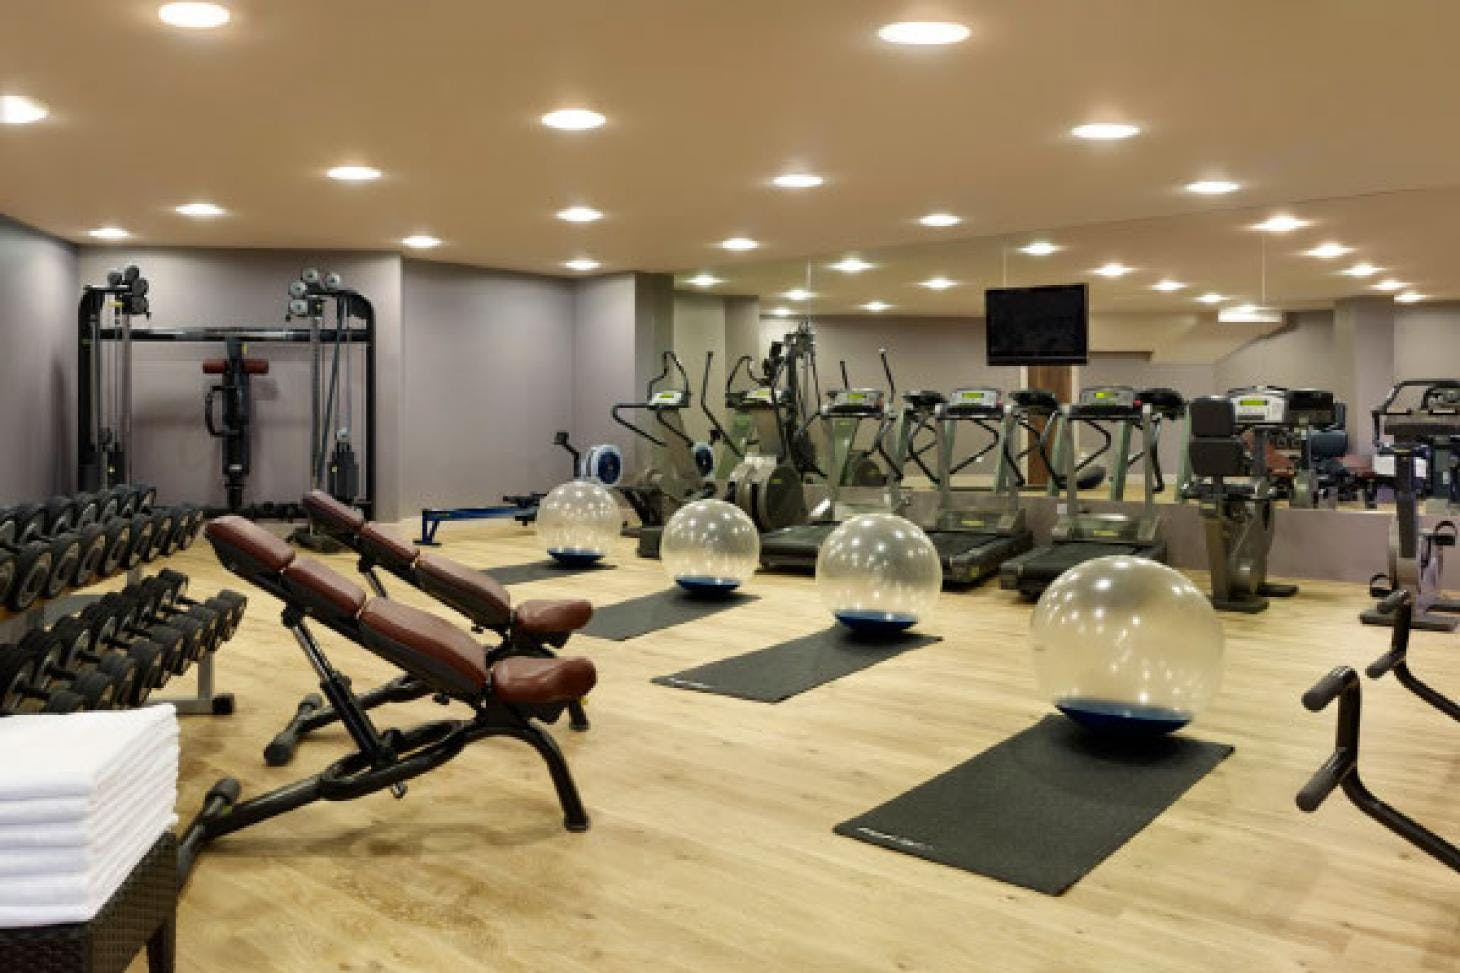 Blue Harbour Spa Gym gym